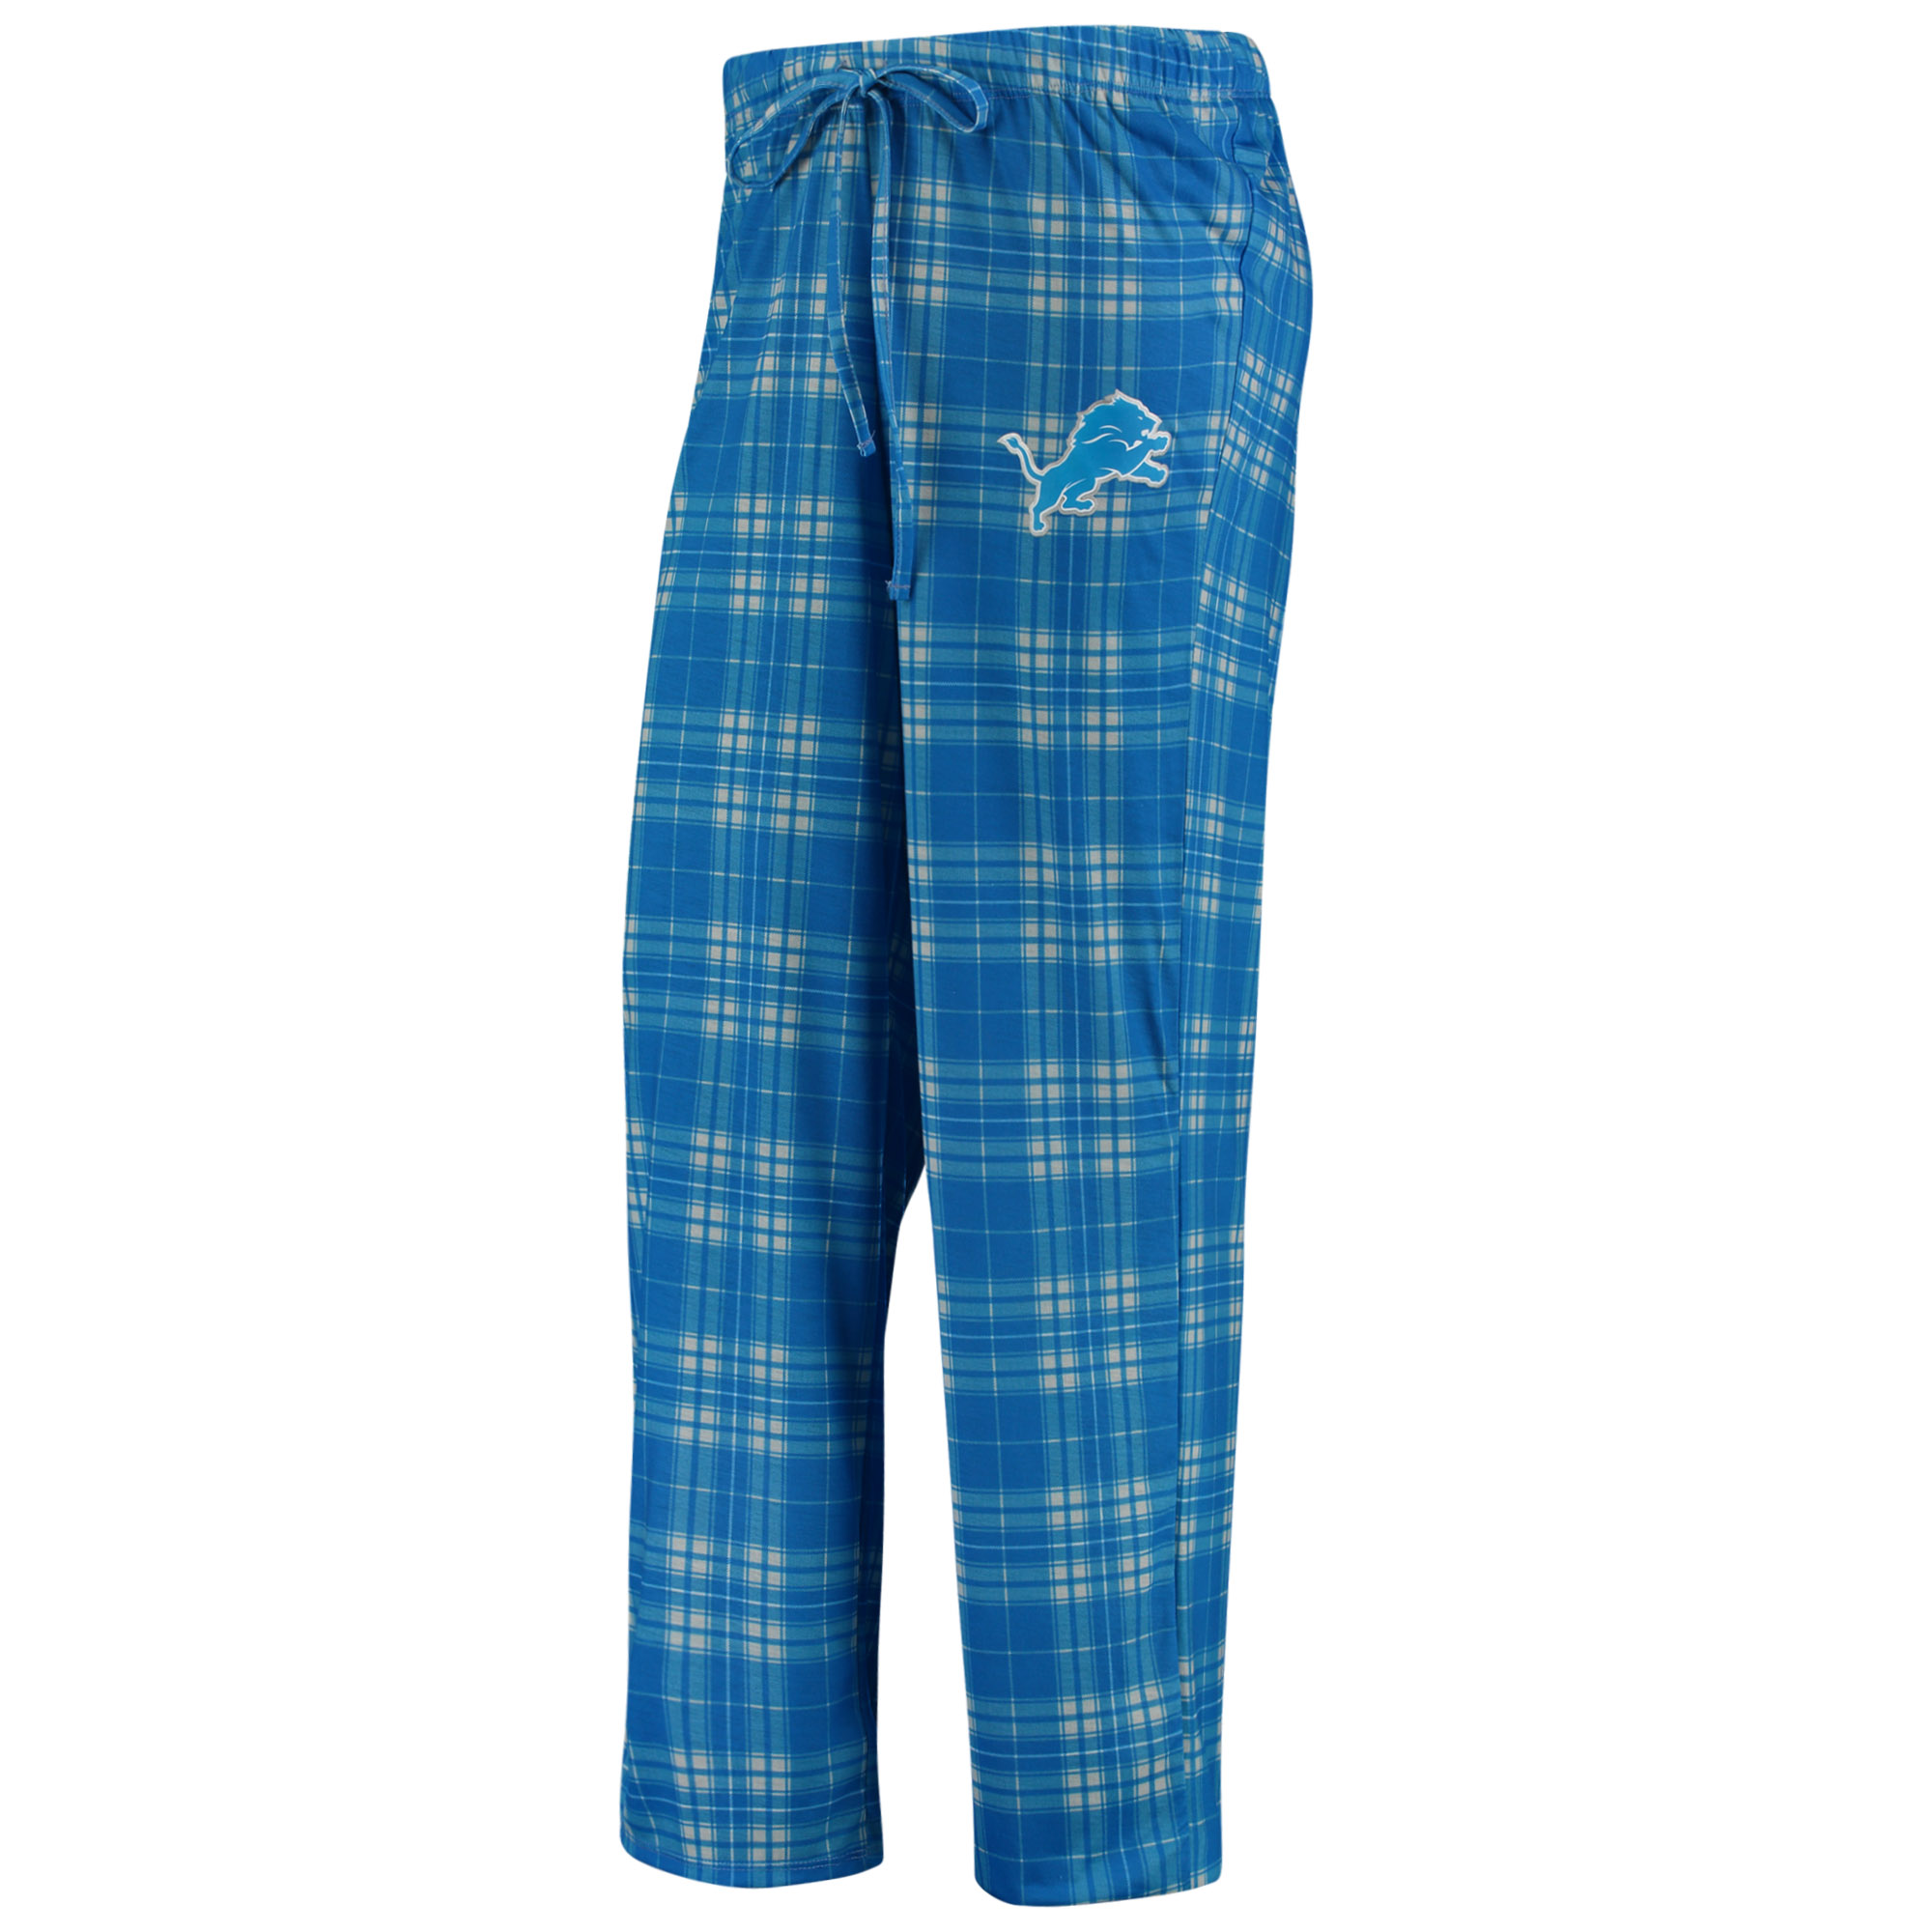 Detroit Lions Concepts Sport Women's Plus Size Rush Knit Pajama Pants - Blue/White